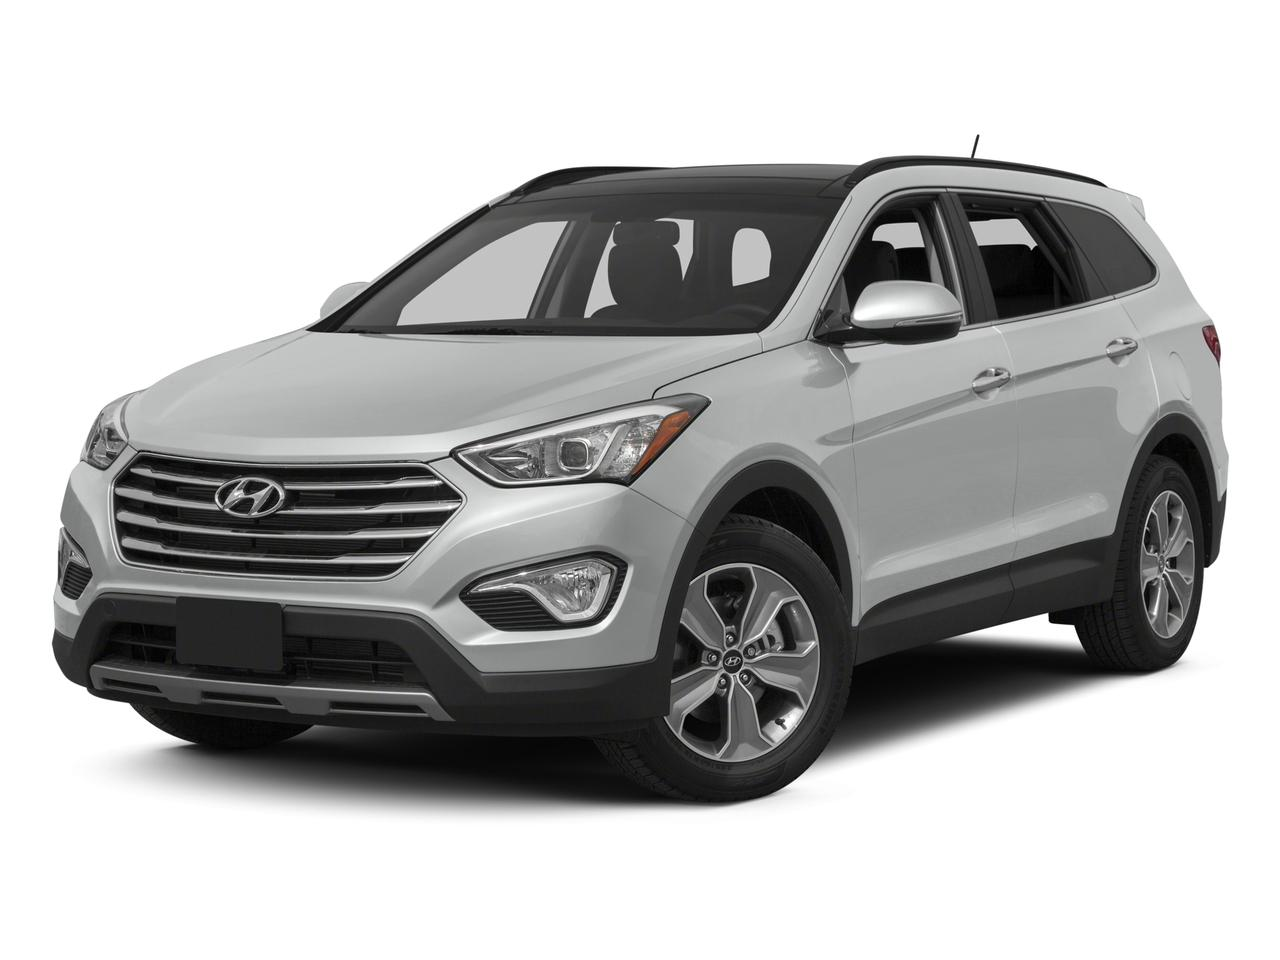 2015 Hyundai Santa Fe Vehicle Photo in Nashua, NH 03060